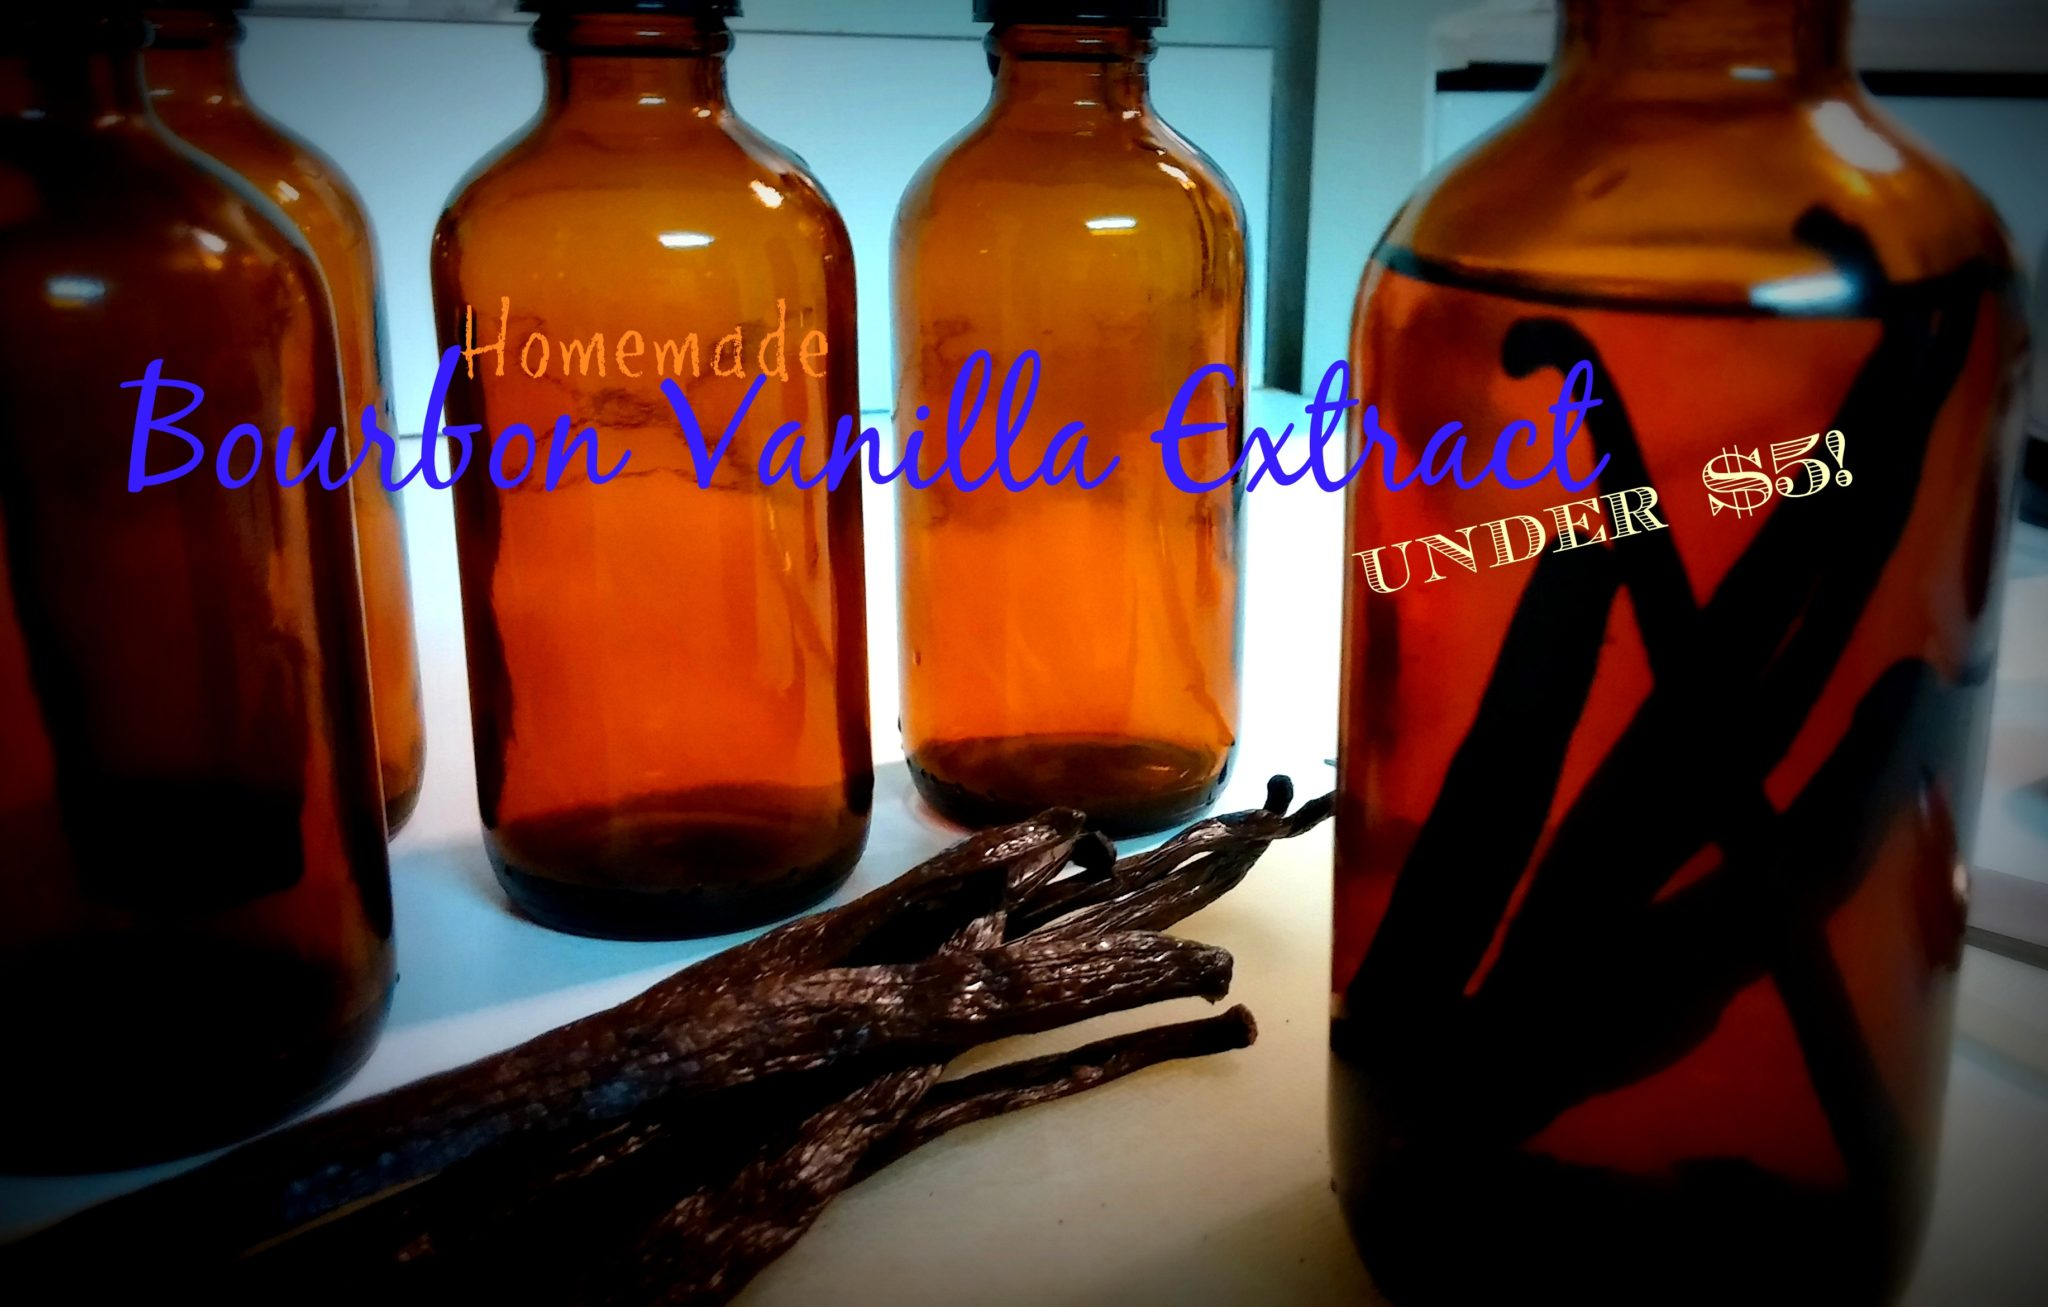 Homemade Bourbon Vanilla Extract for under $5!